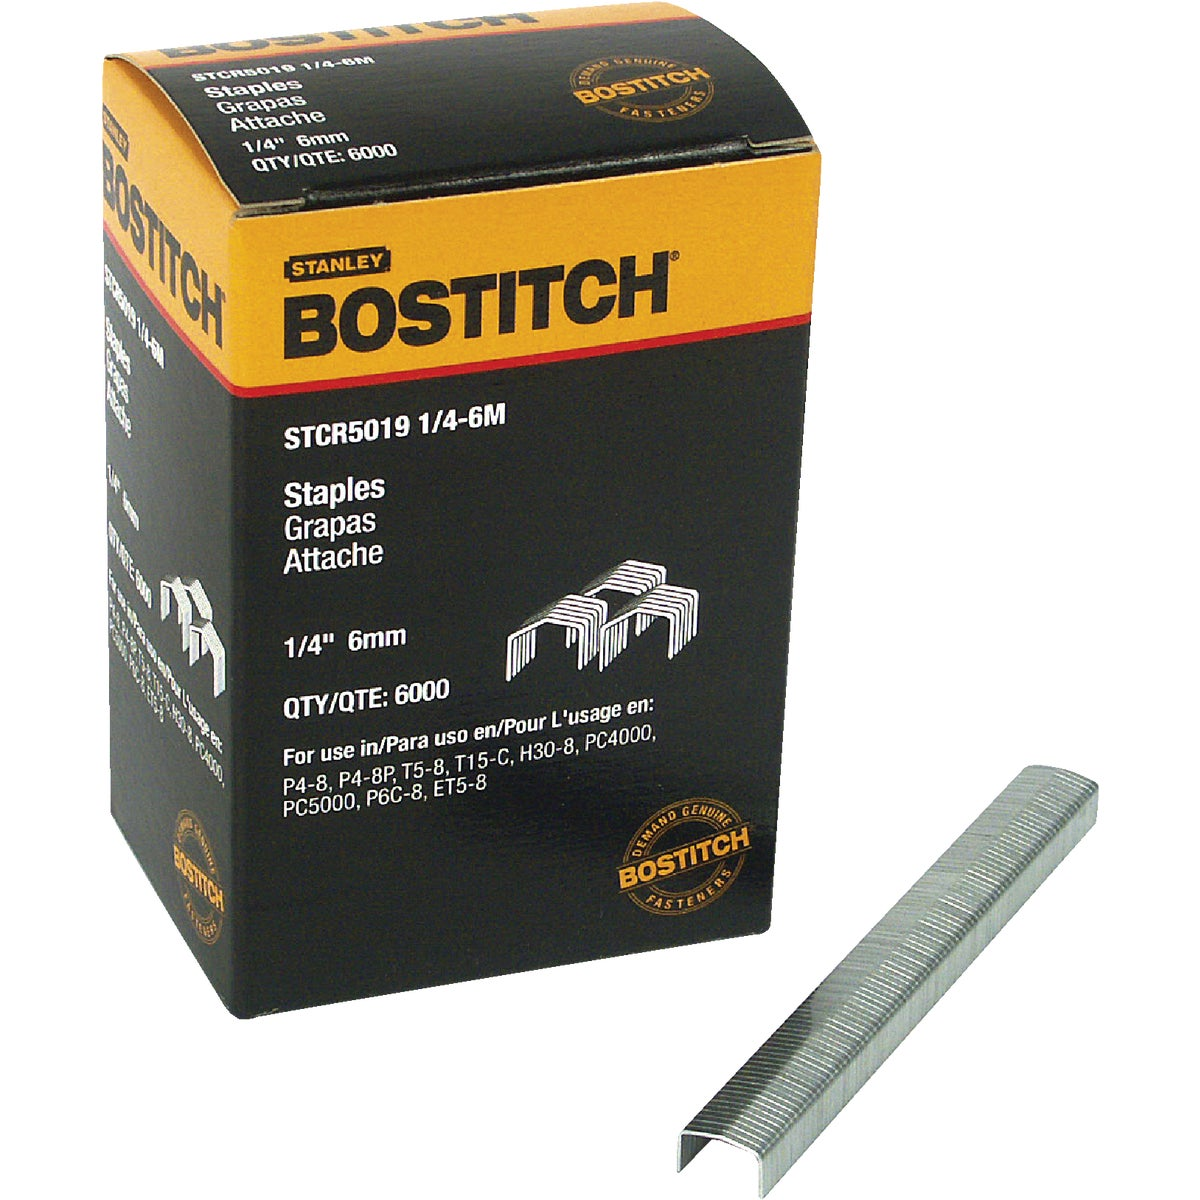 "1/4"" STAPLE - STCR50191/4-6M by Stanley Bostitch"